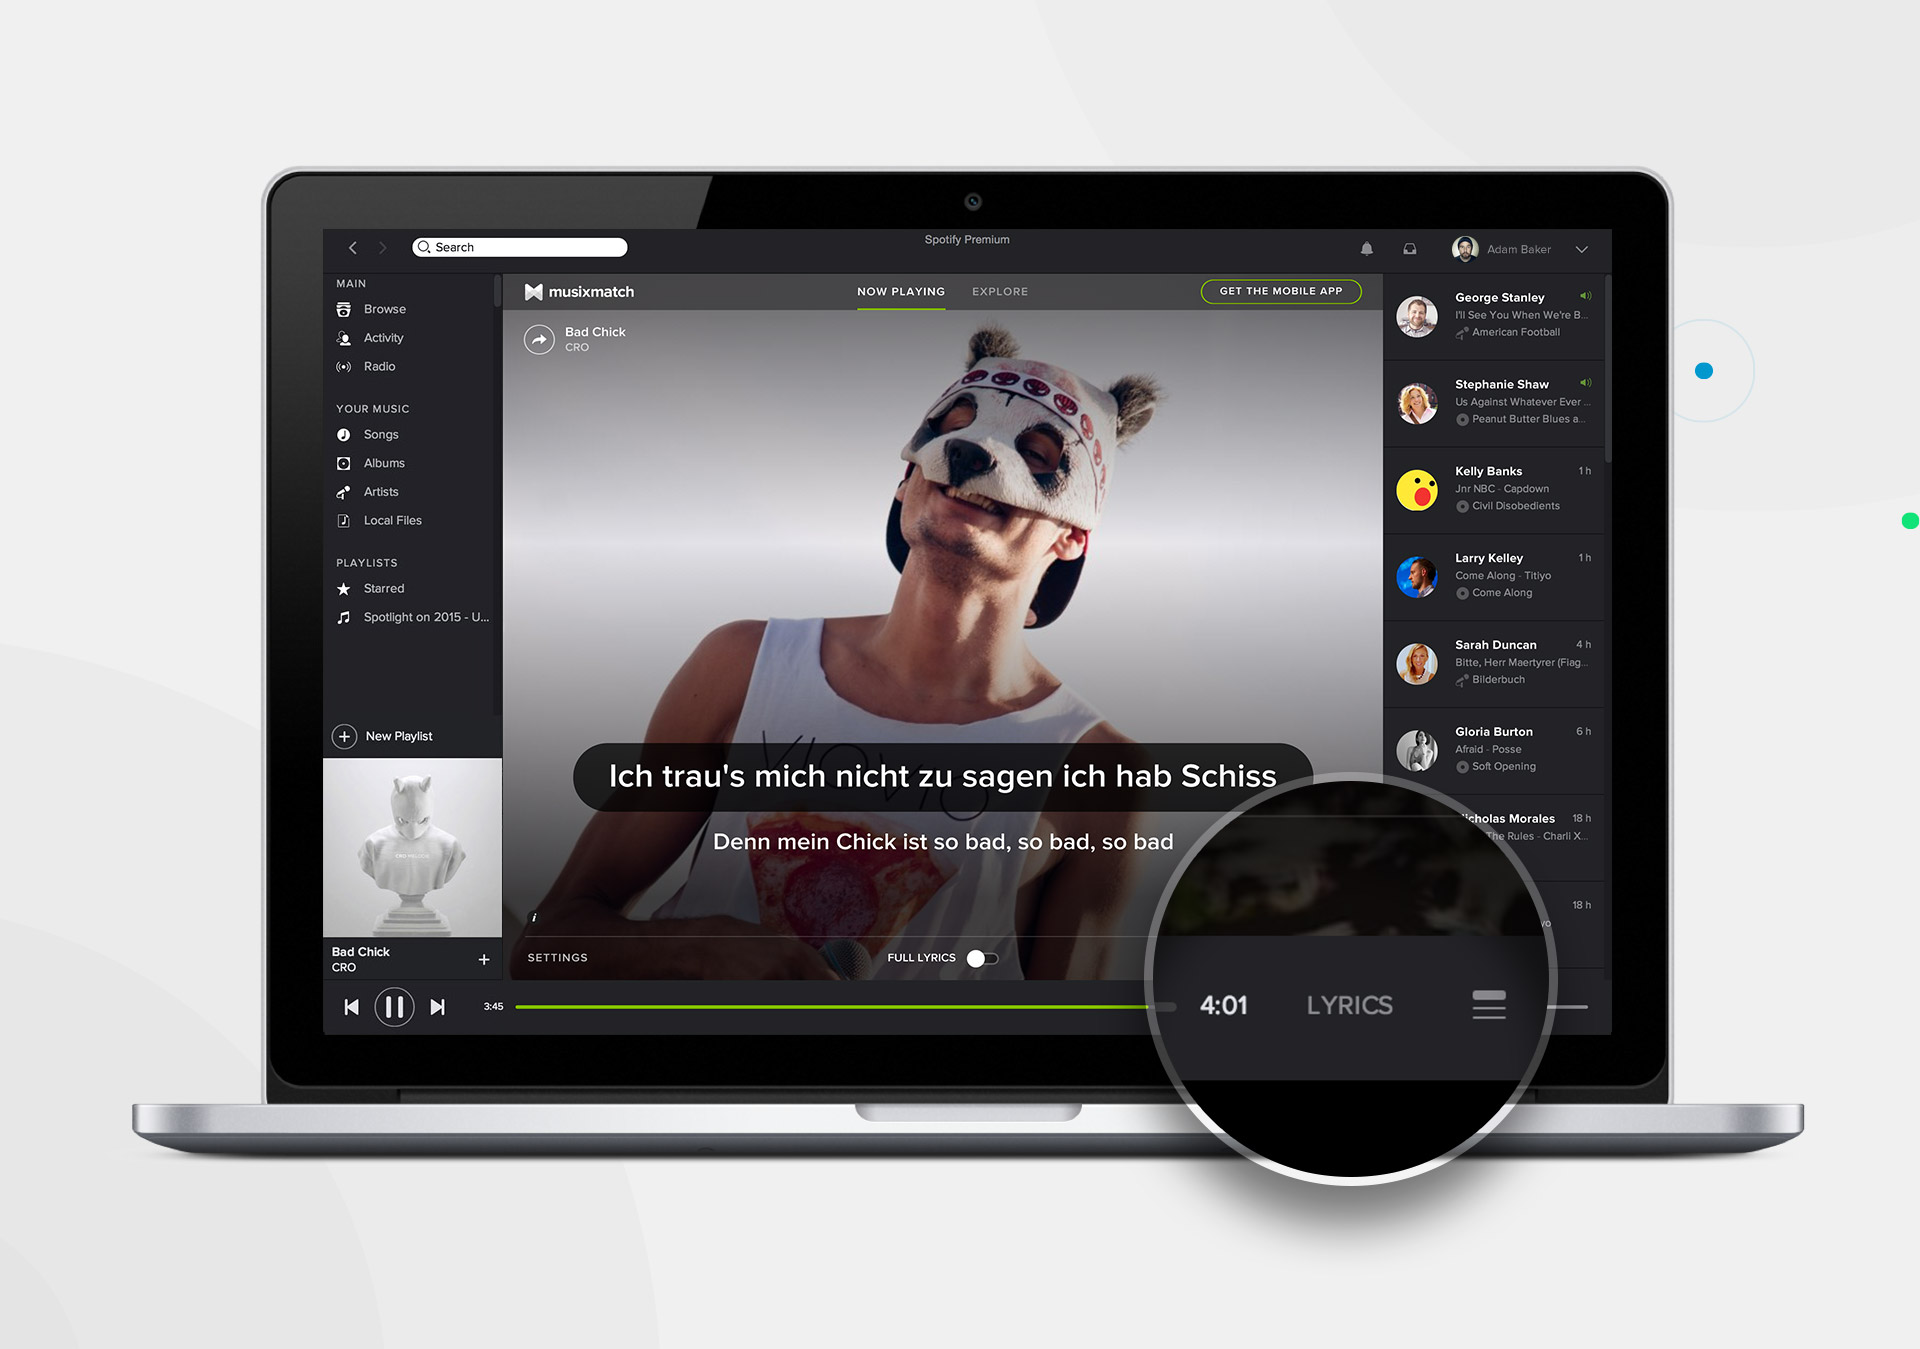 Songtexte Spotify Pc